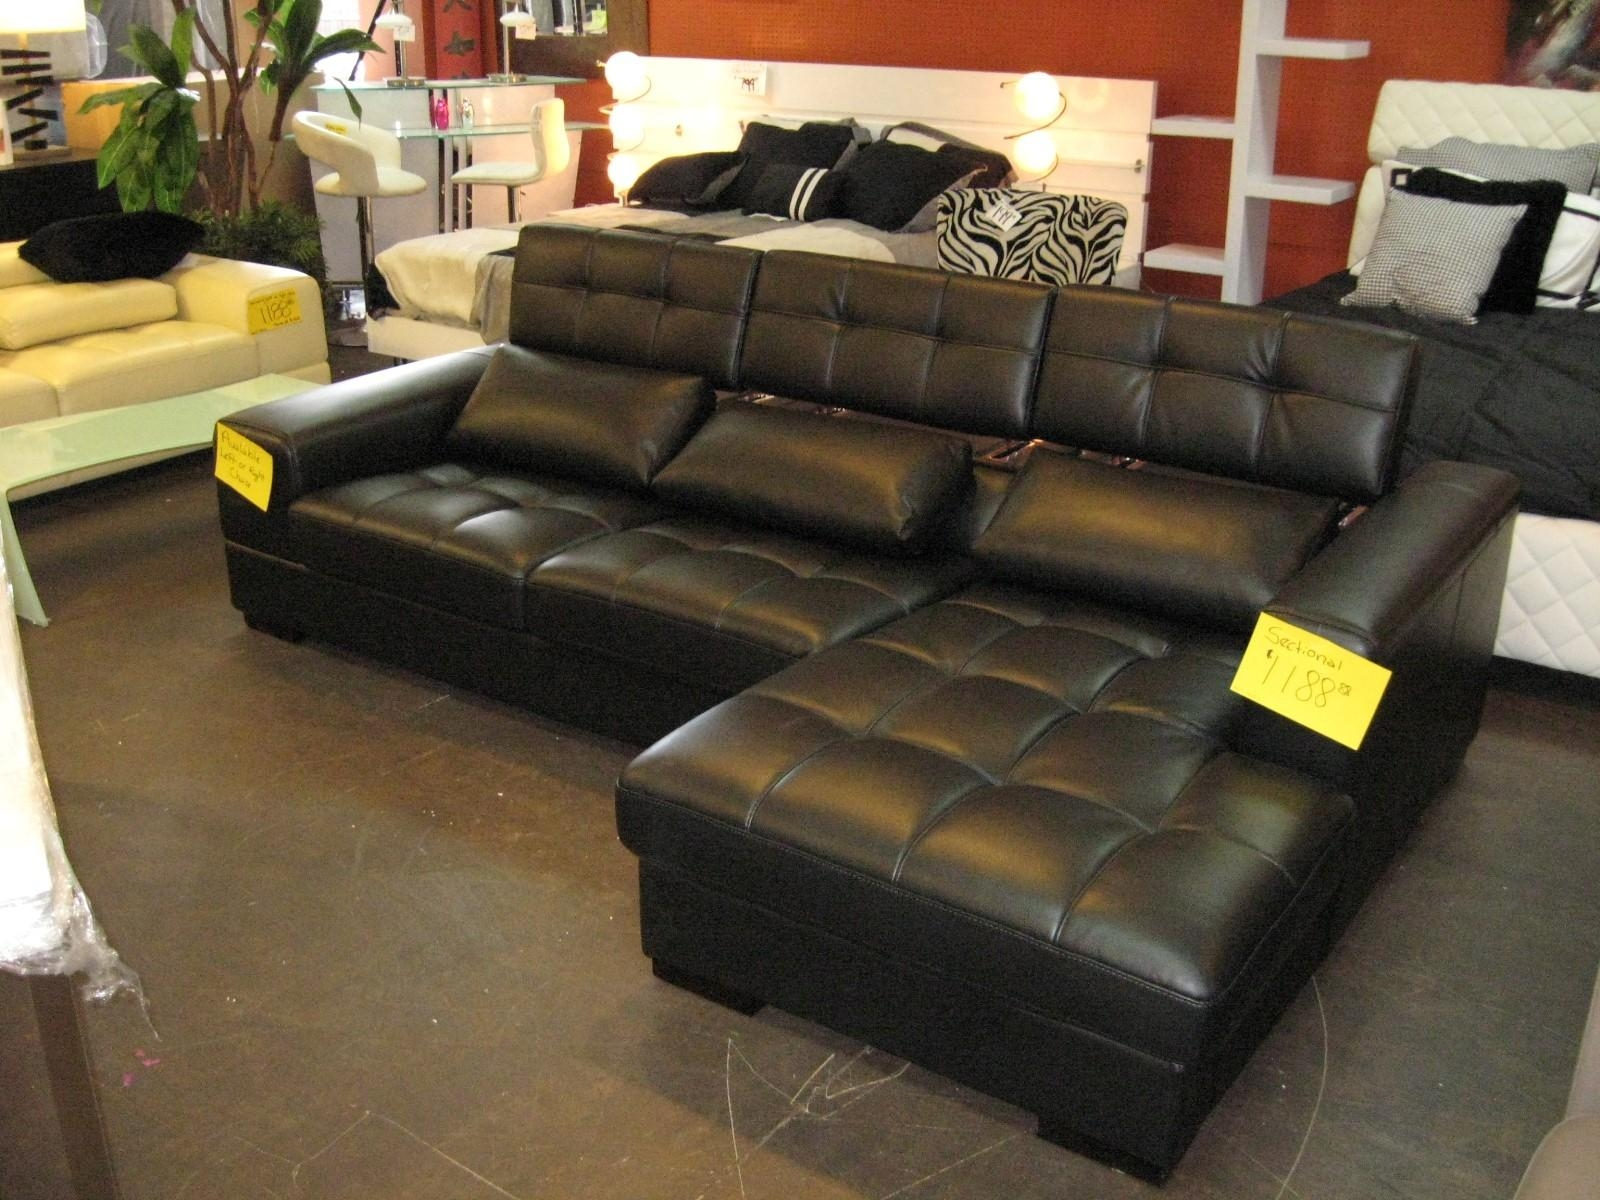 Furniture & Rug: Cheap Sectional Couches For Home Furniture Idea Intended For Leather Modular Sectional Sofas (View 9 of 20)